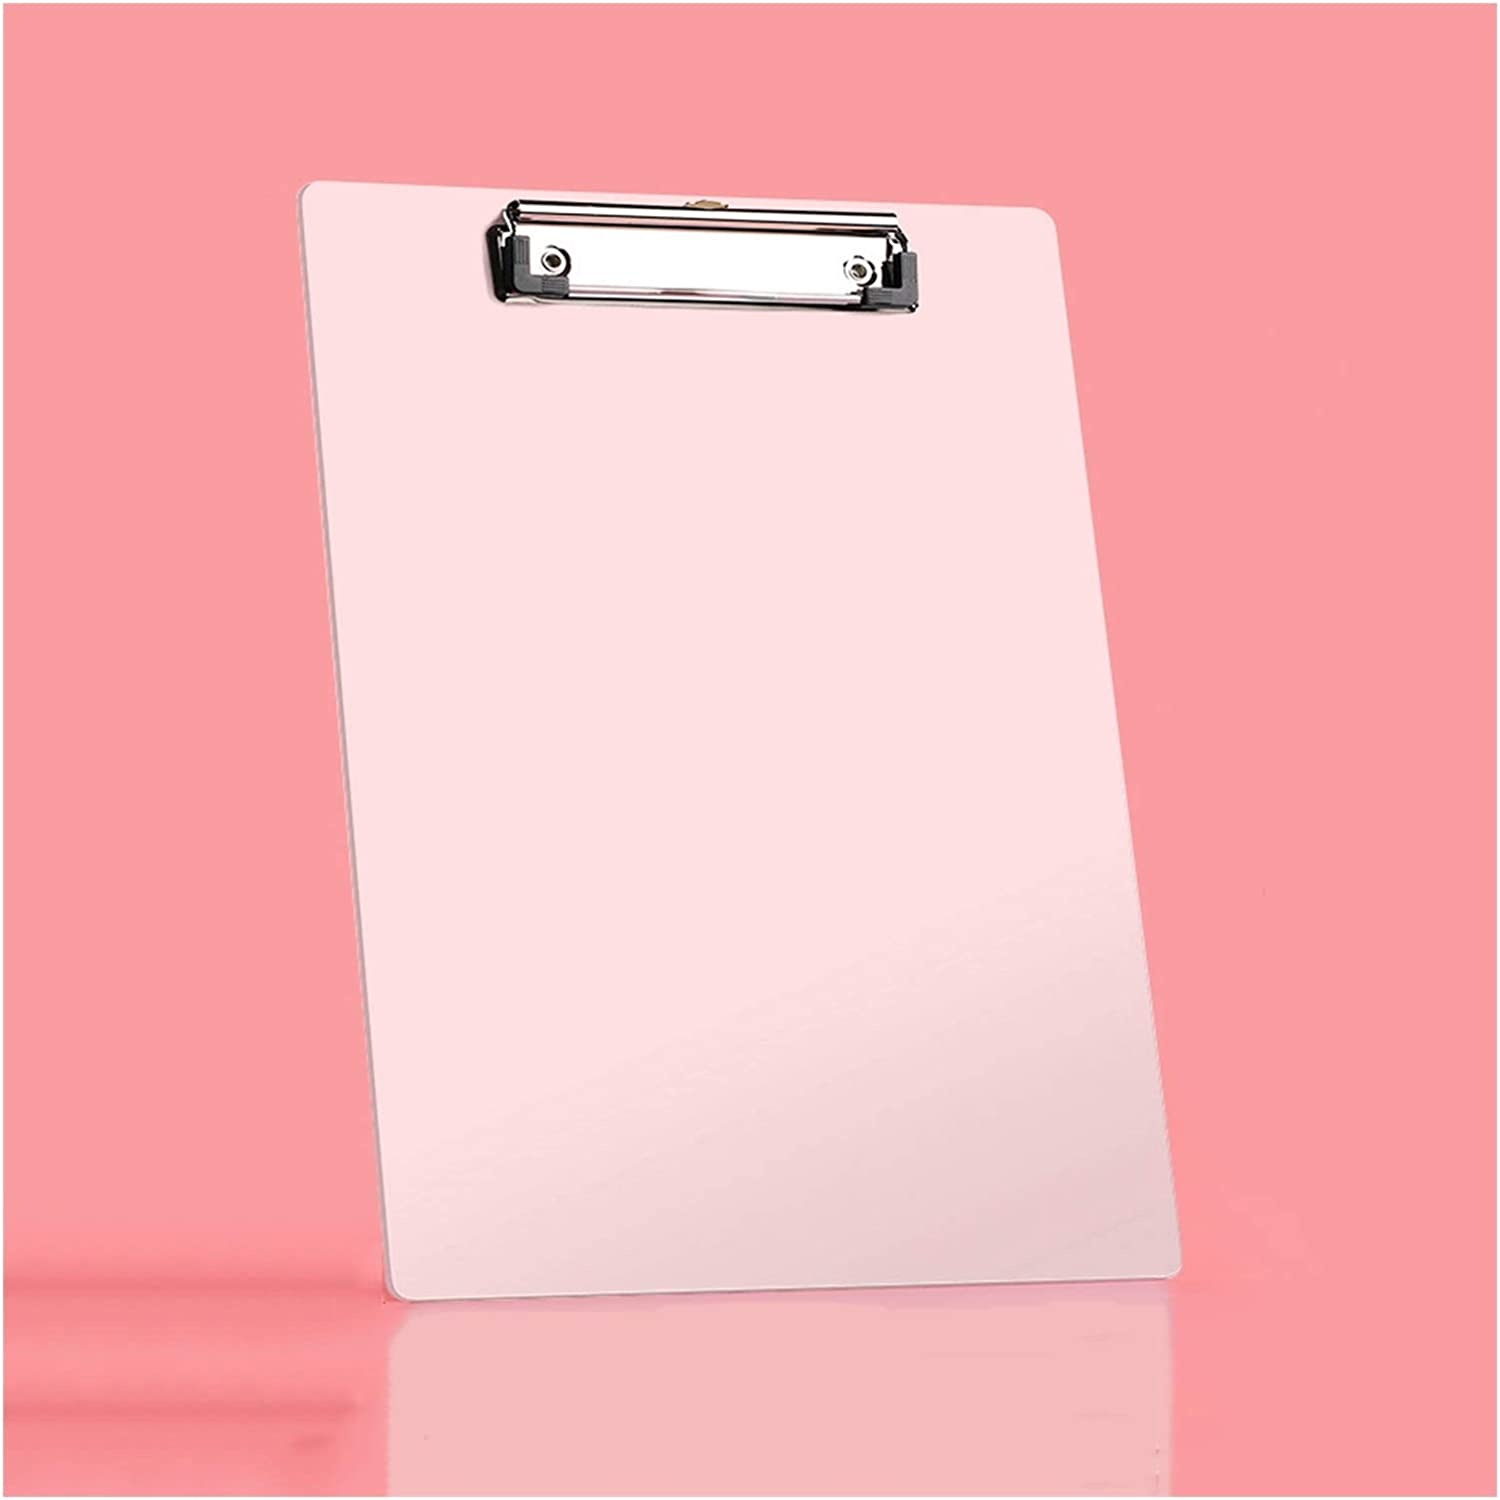 Ranking TOP1 Desktop File A4 Paper Folder Metal OFFicial store With Strong Clip Plastic